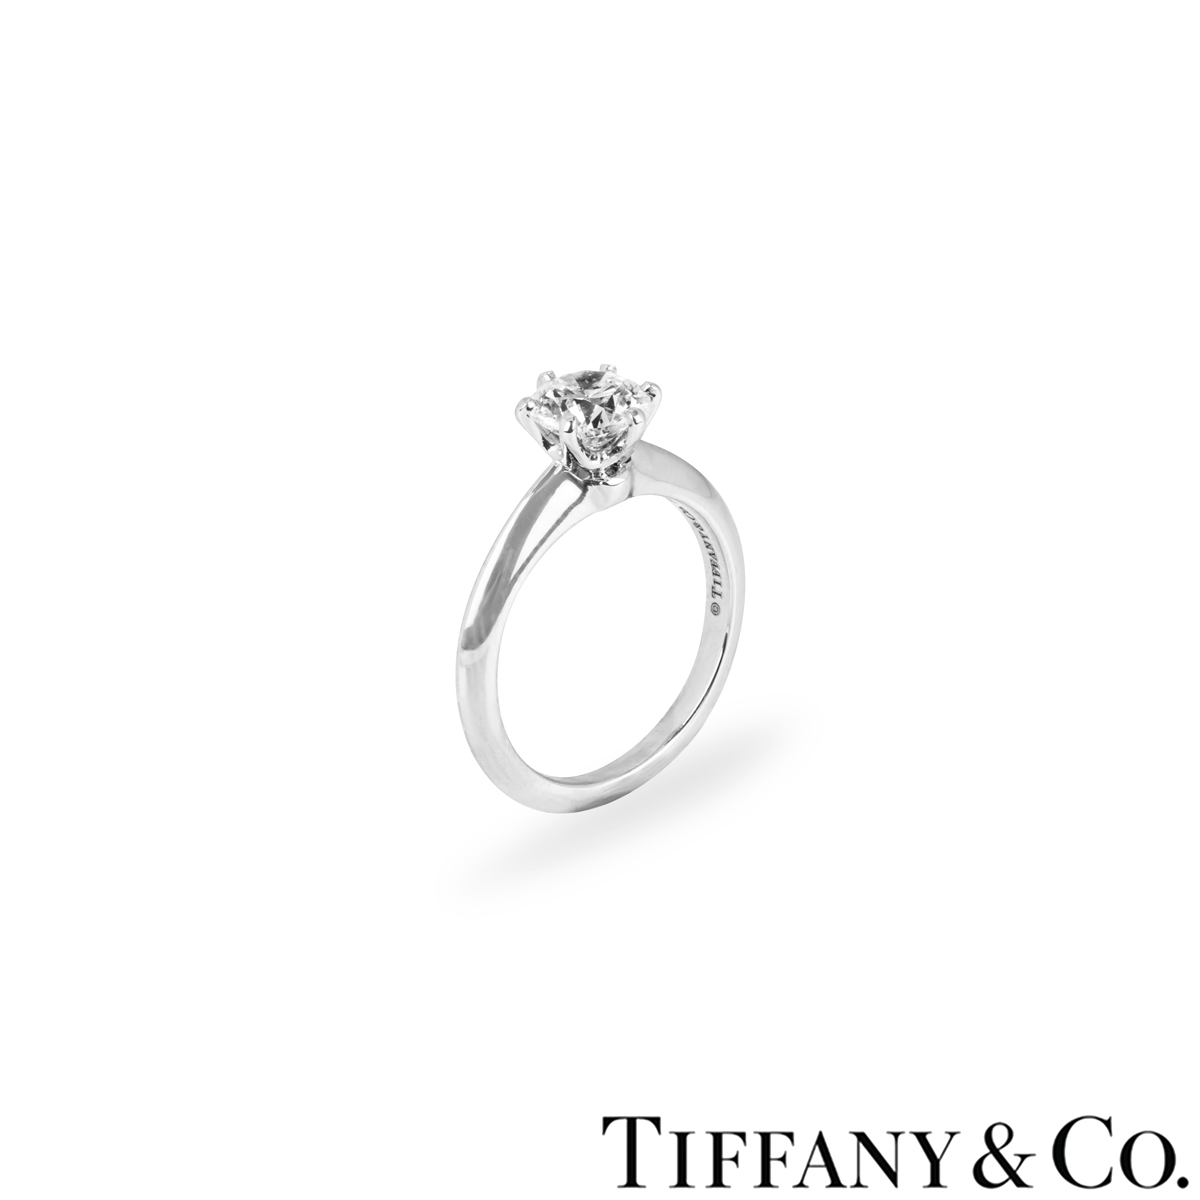 Tiffany & Co. Platinum Diamond Setting Ring 1.16ct I/VVS1 XXX